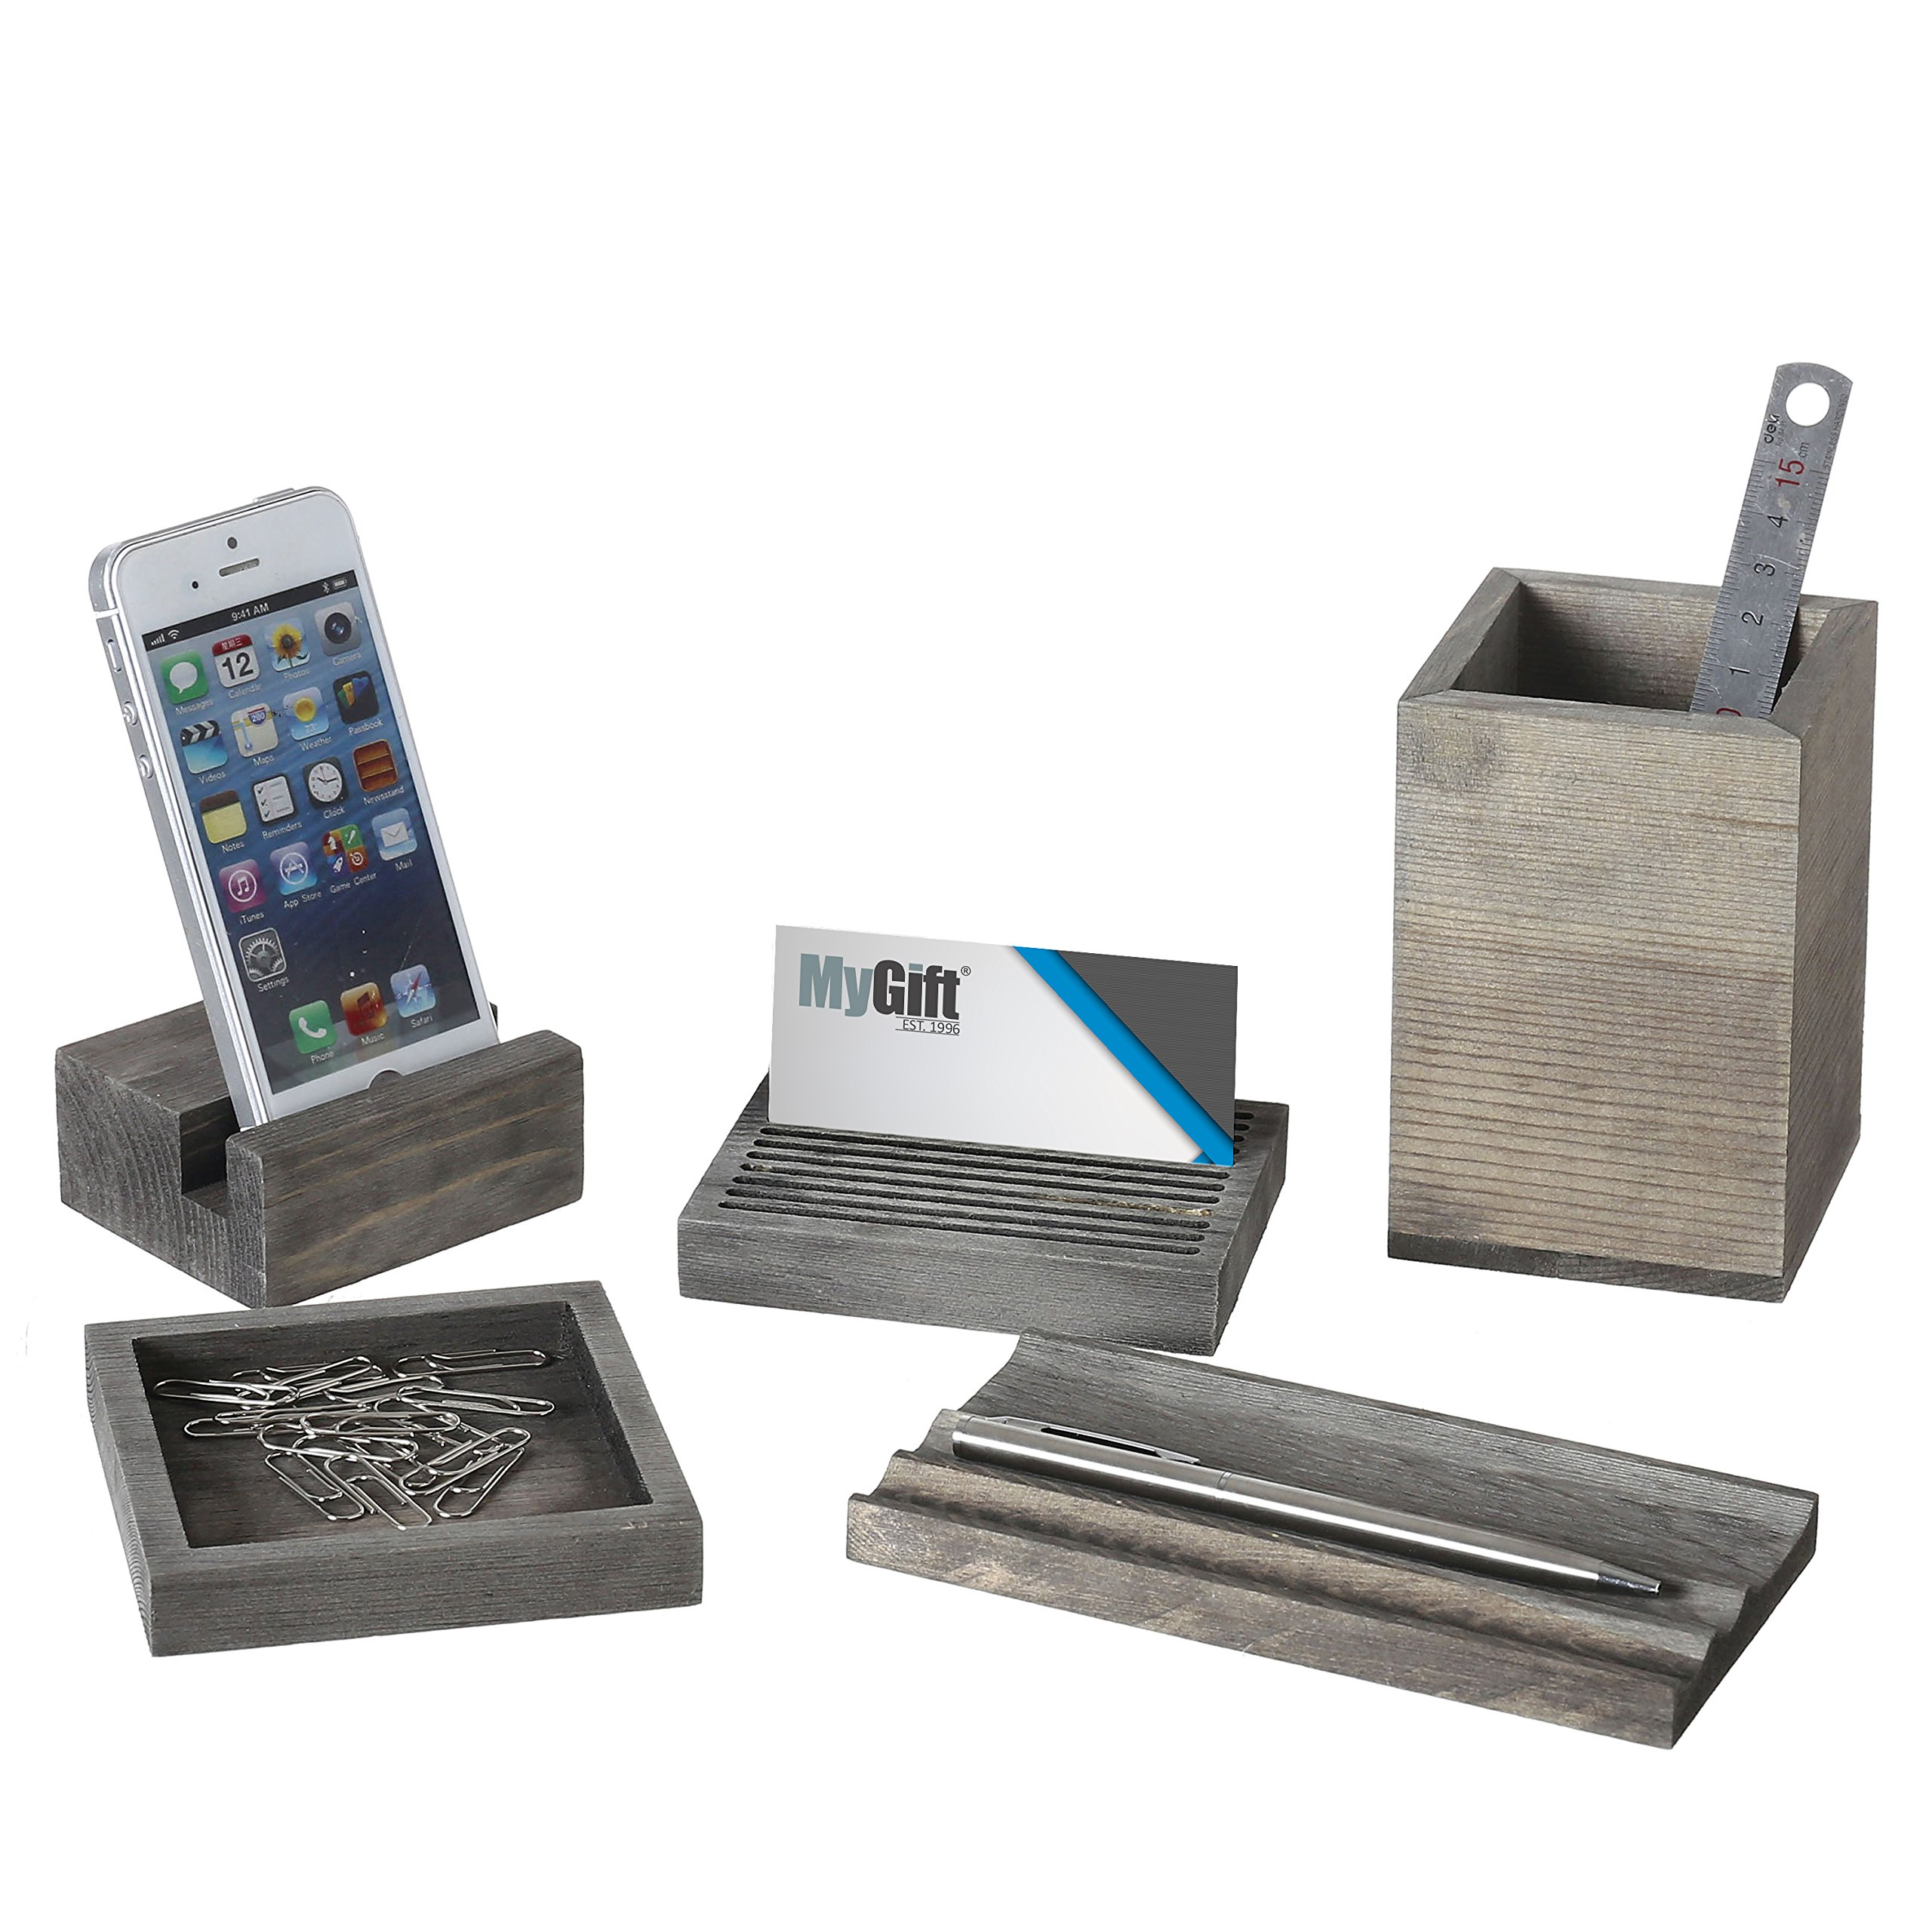 Vintage Gray Wood 5-Piece Desk Set with Pen Tray, Pencil Cup, Memo Pad & Card Holders, Phone Stand by MyGift